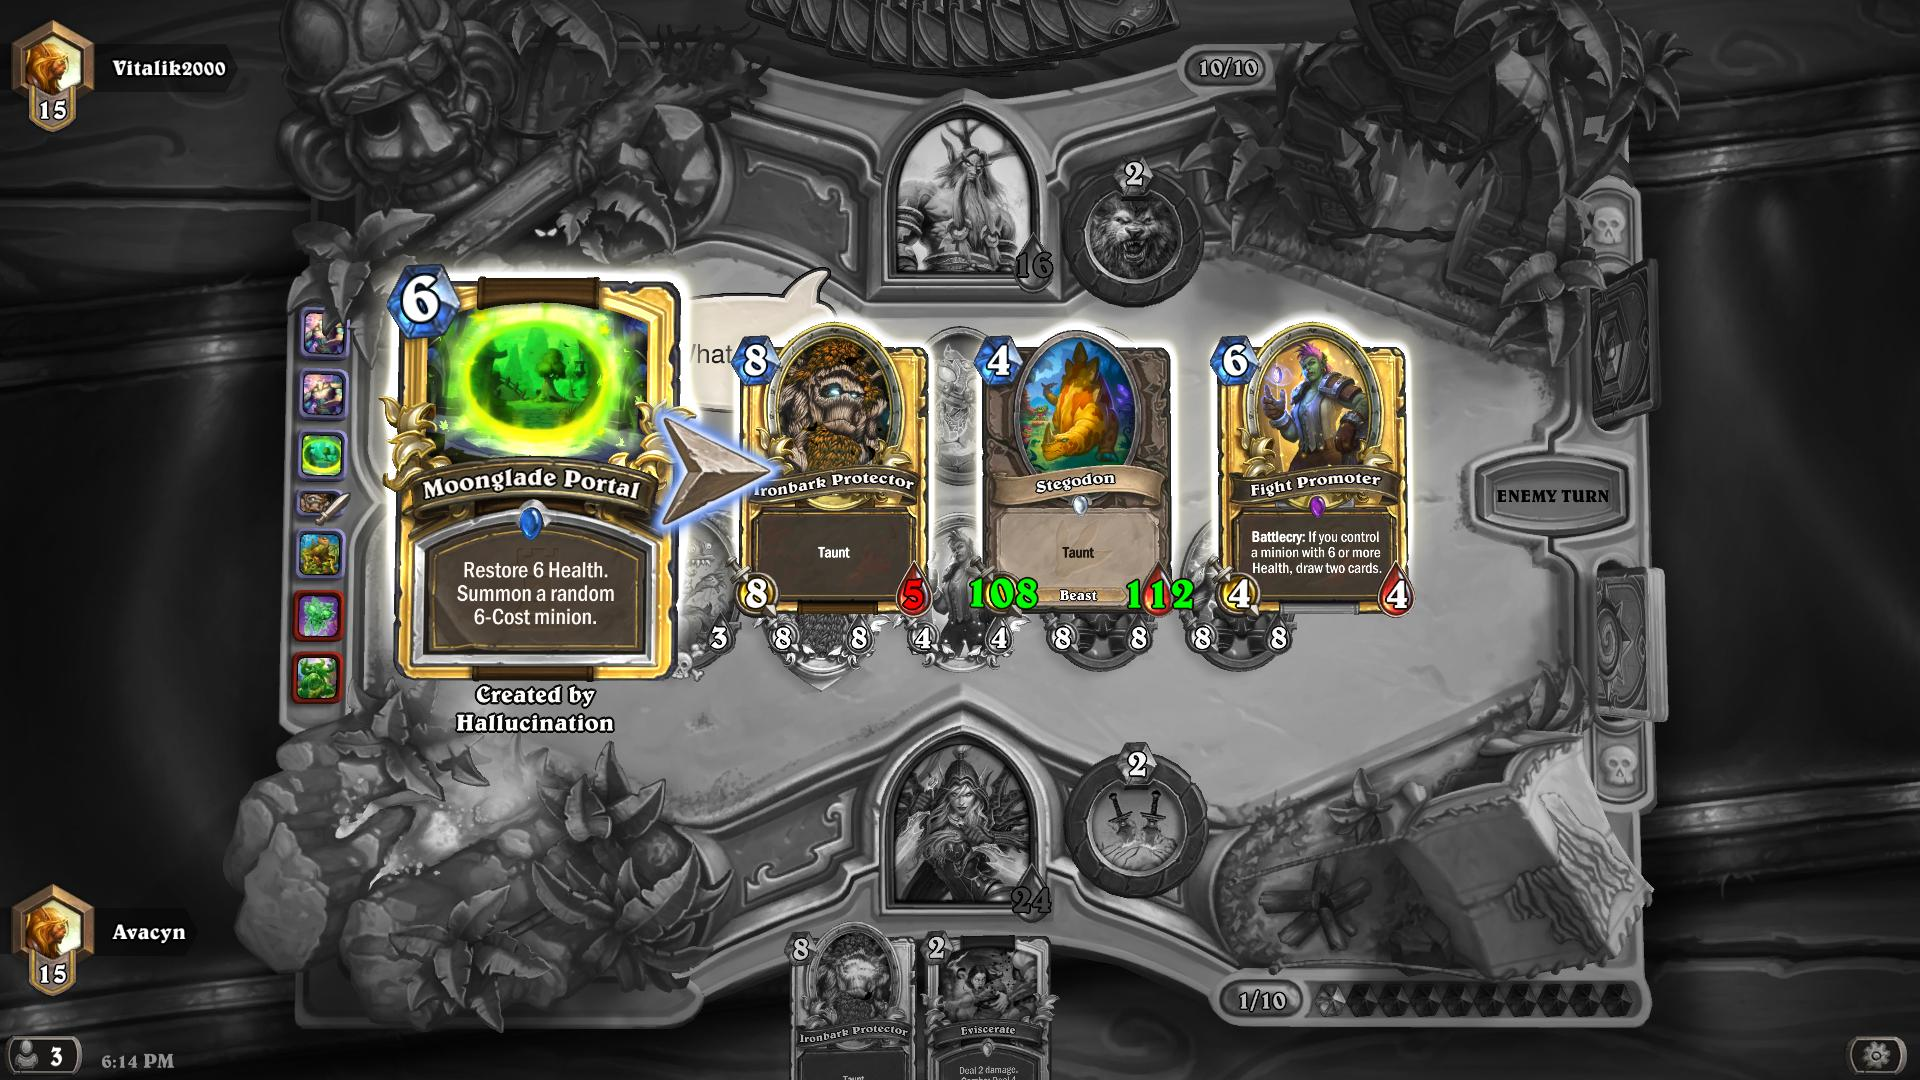 ... as displayed in the following link  http   imgur.com a OSWbT. Here you  see a Stegodon repeatedly showing up in the card log with increasing stats   ... 251d7d562